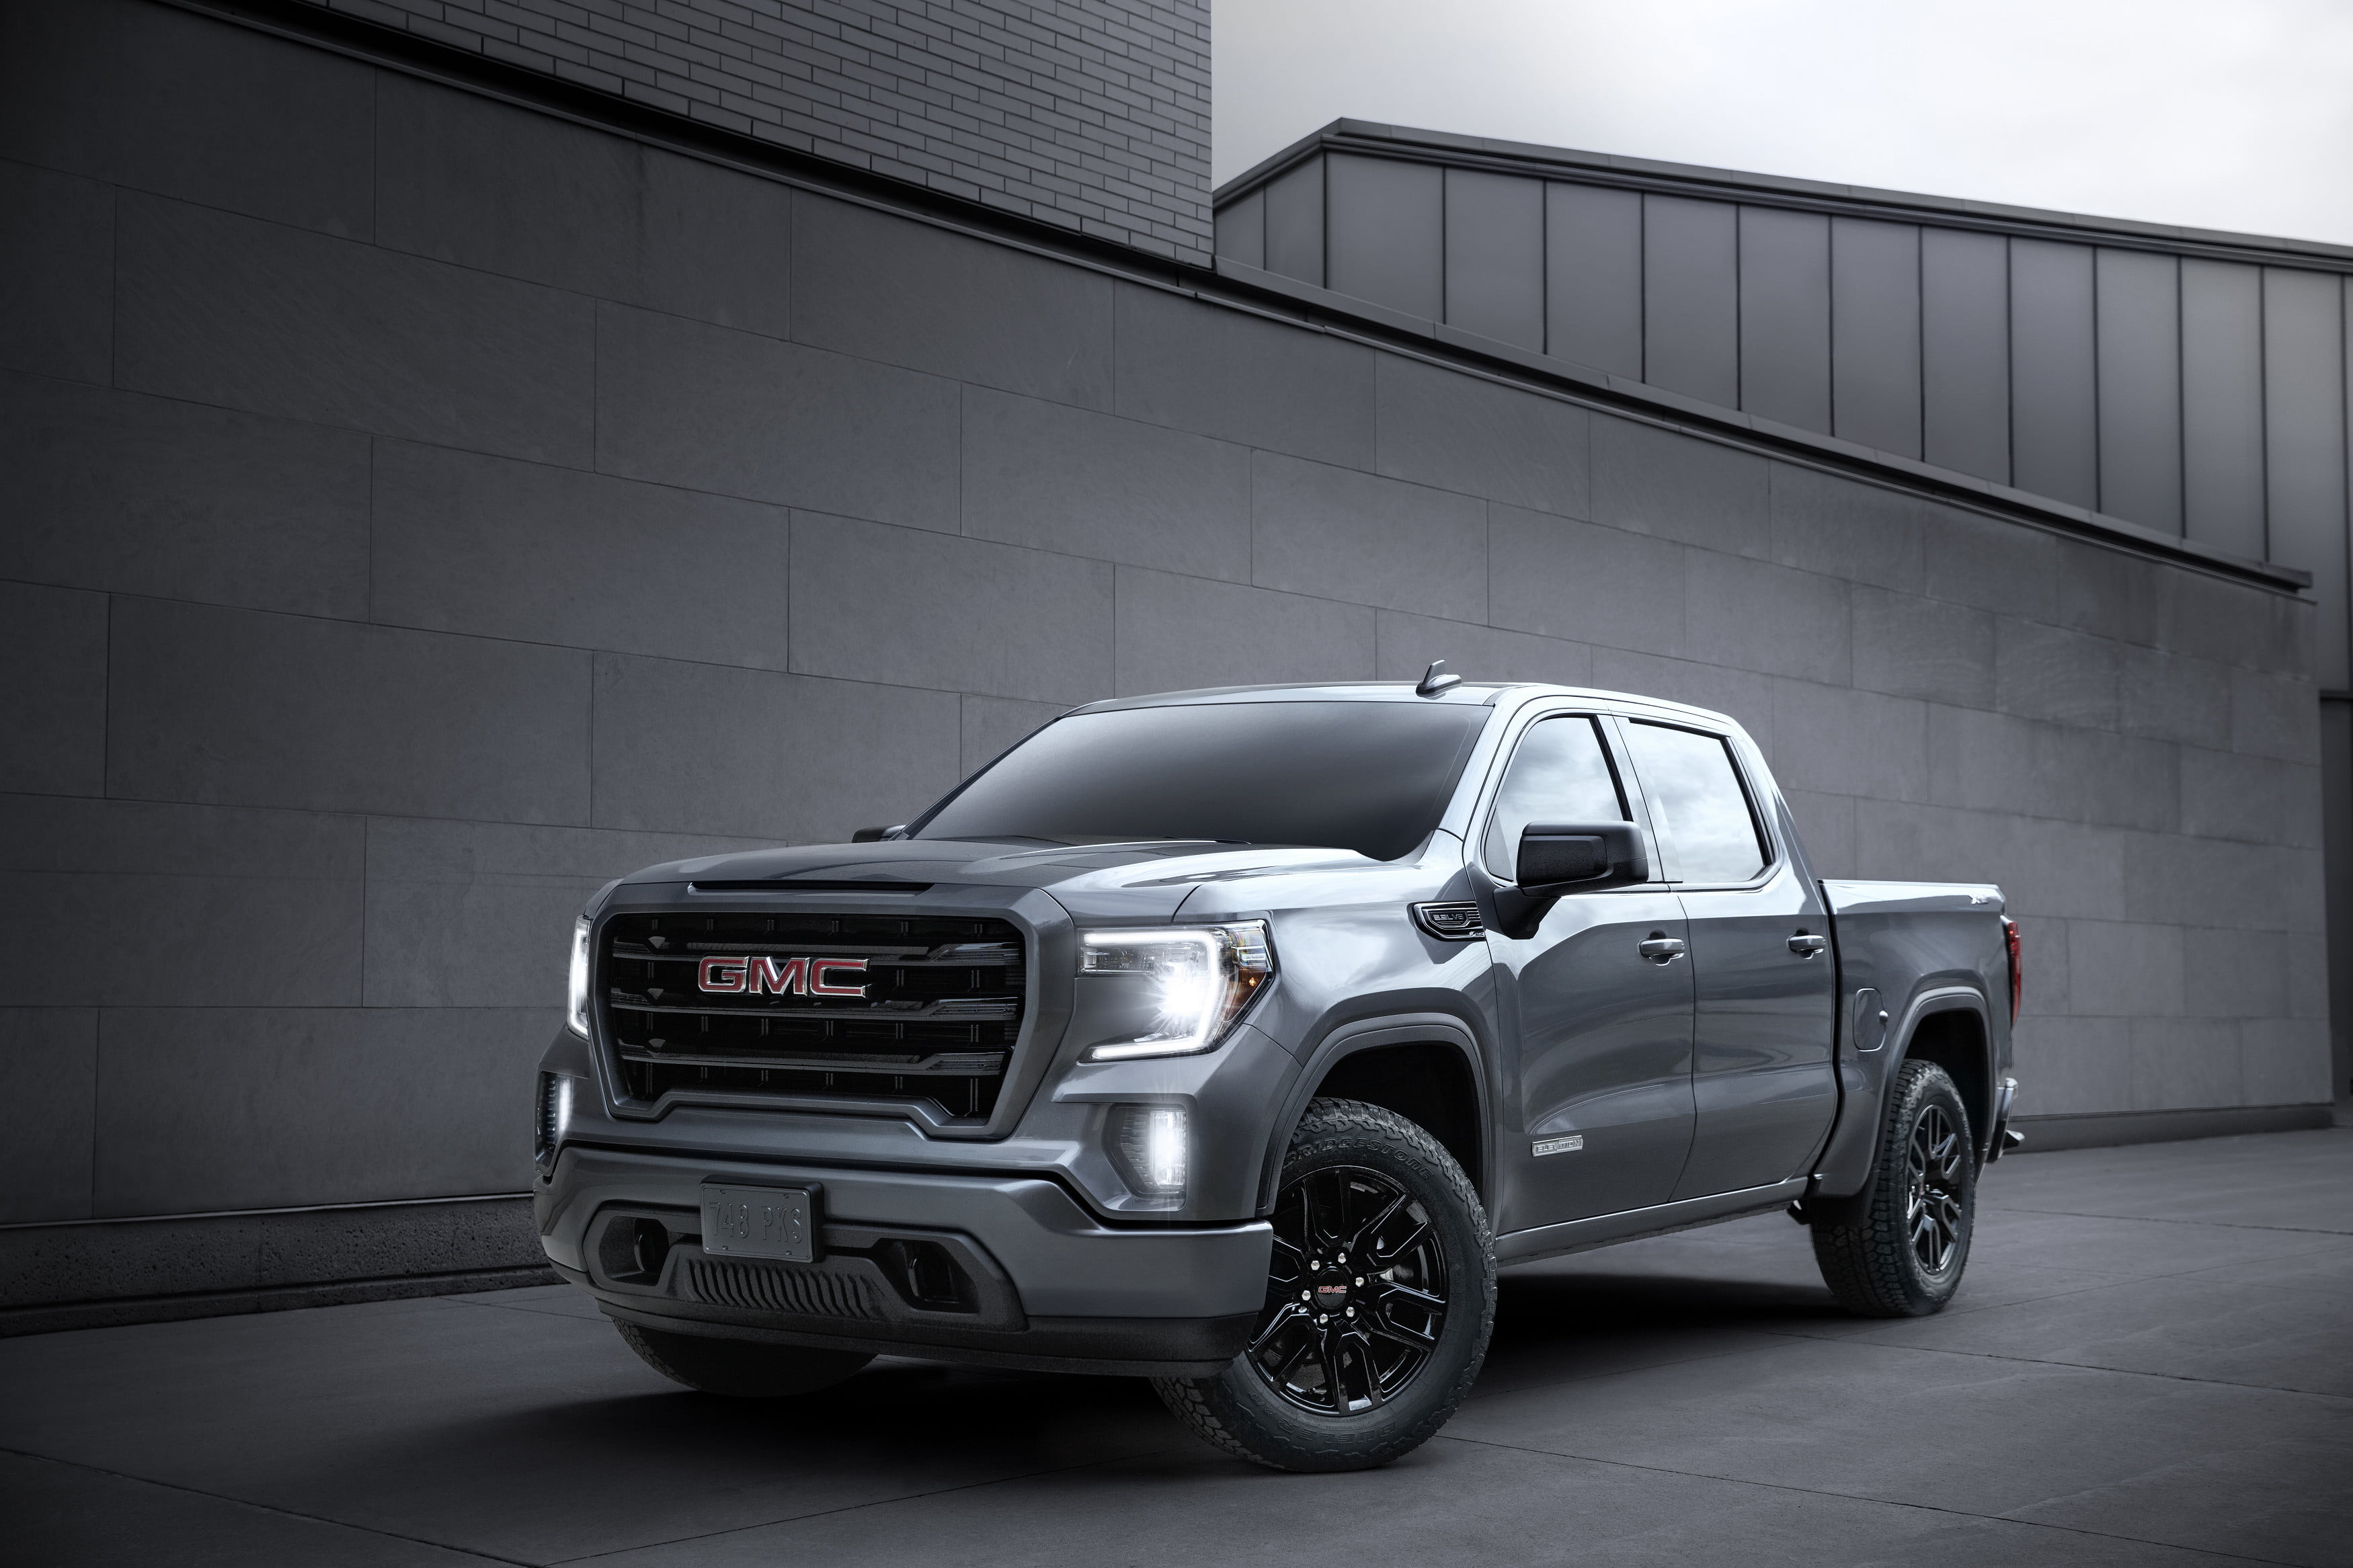 81 New New Gmc Sierra 2020 Specs and Review